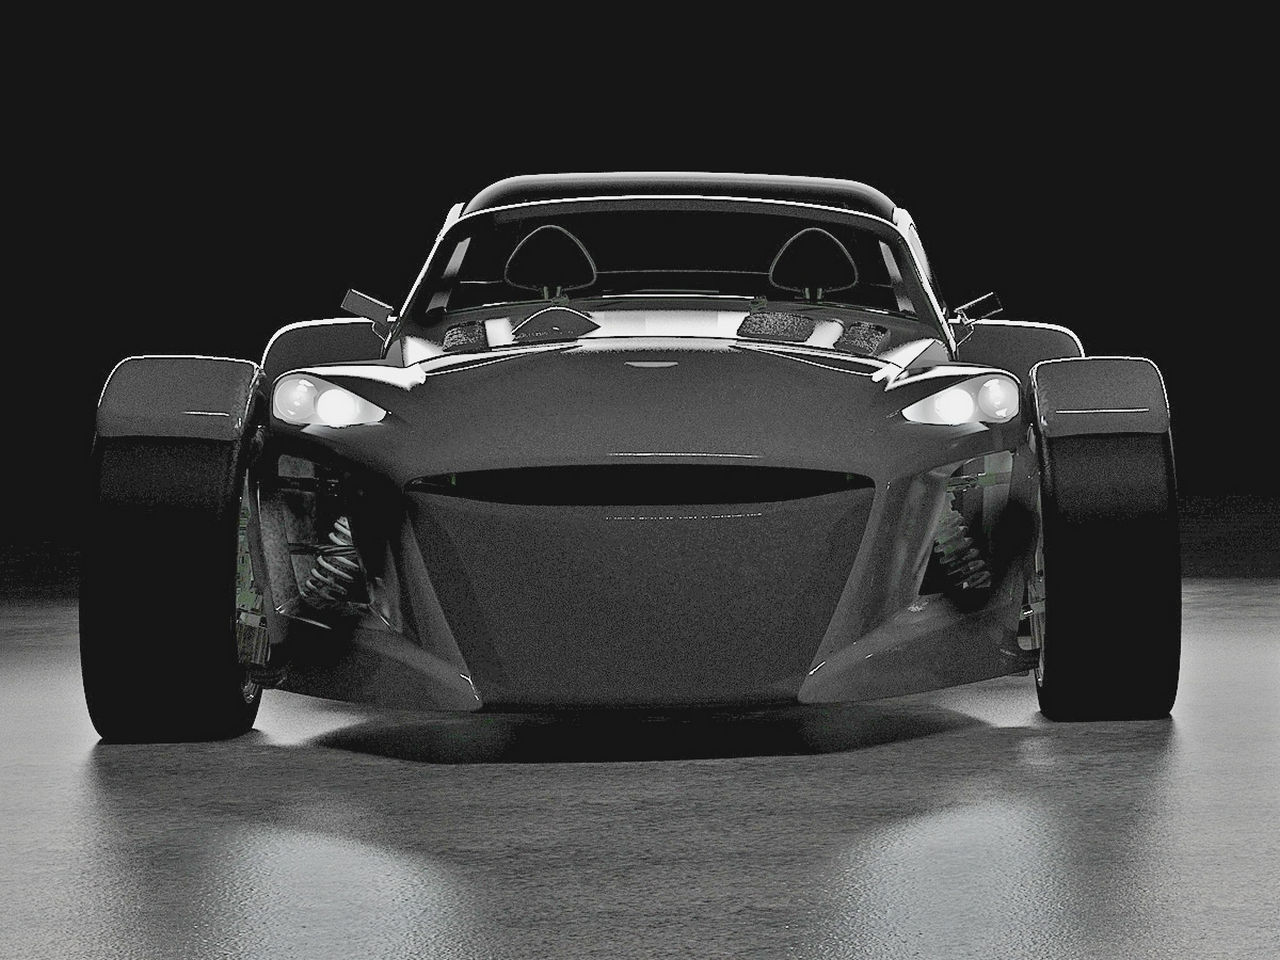 donkervoort-model-year-2016-prezzo-price_0-100_5